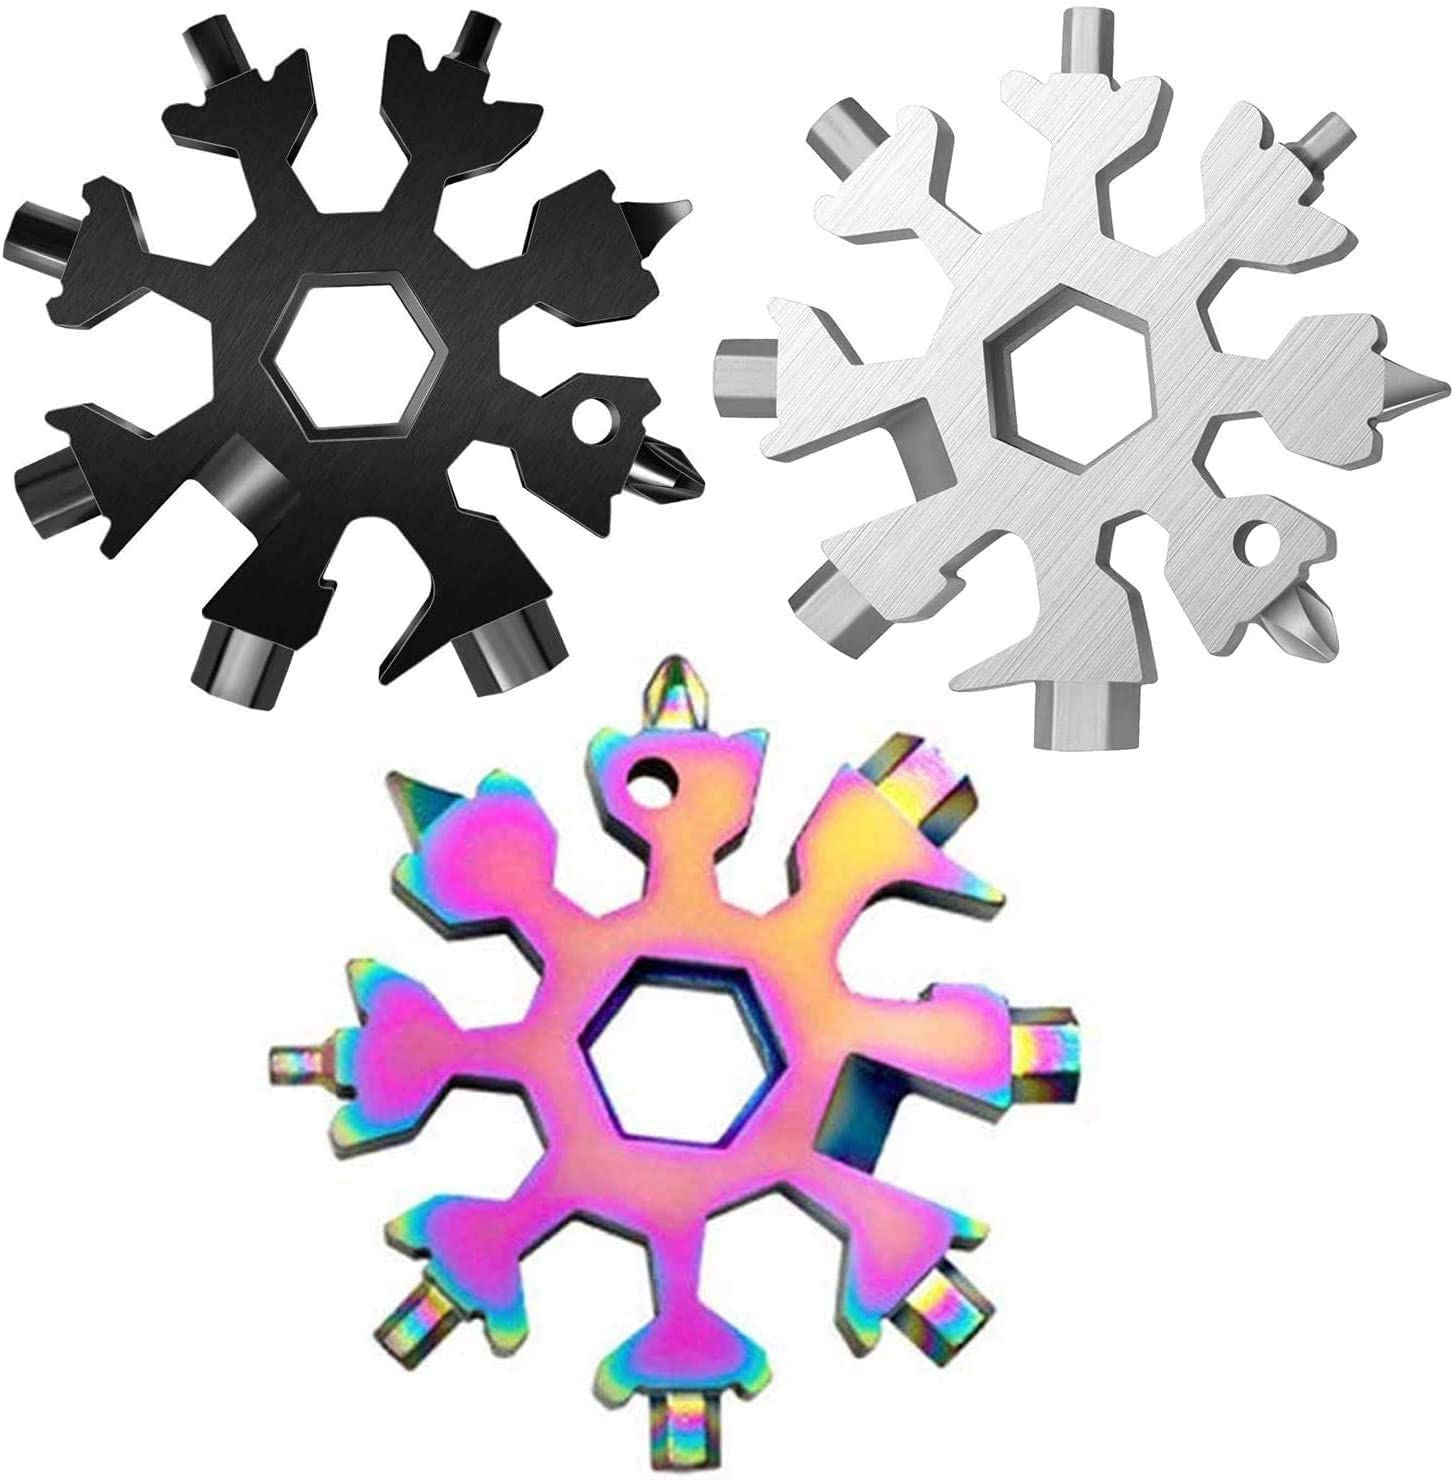 snowflake tools for household